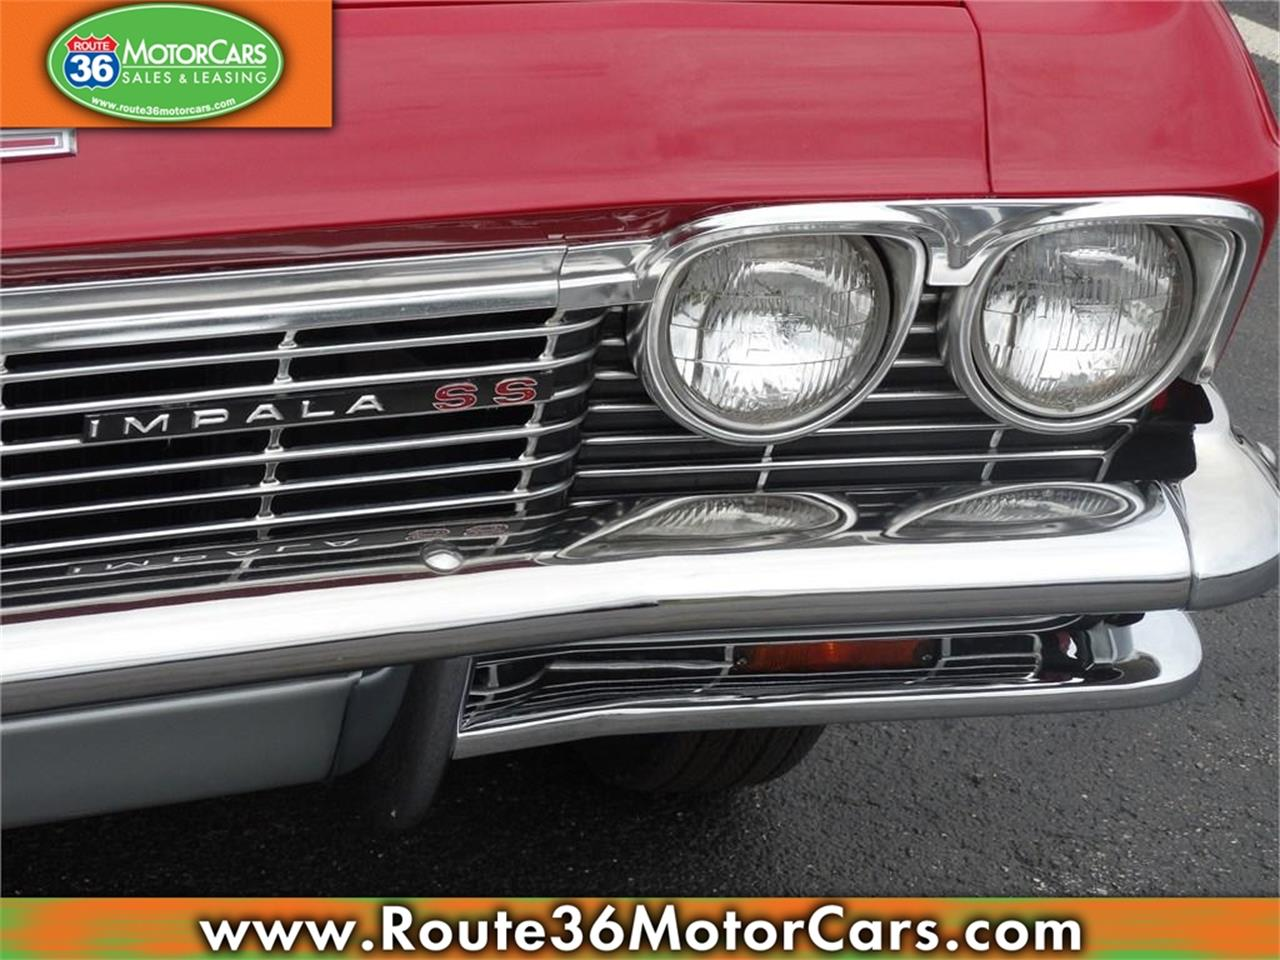 Large Picture of 1965 Chevrolet Impala SS located in Dublin Ohio - $84,475.00 - IKGZ